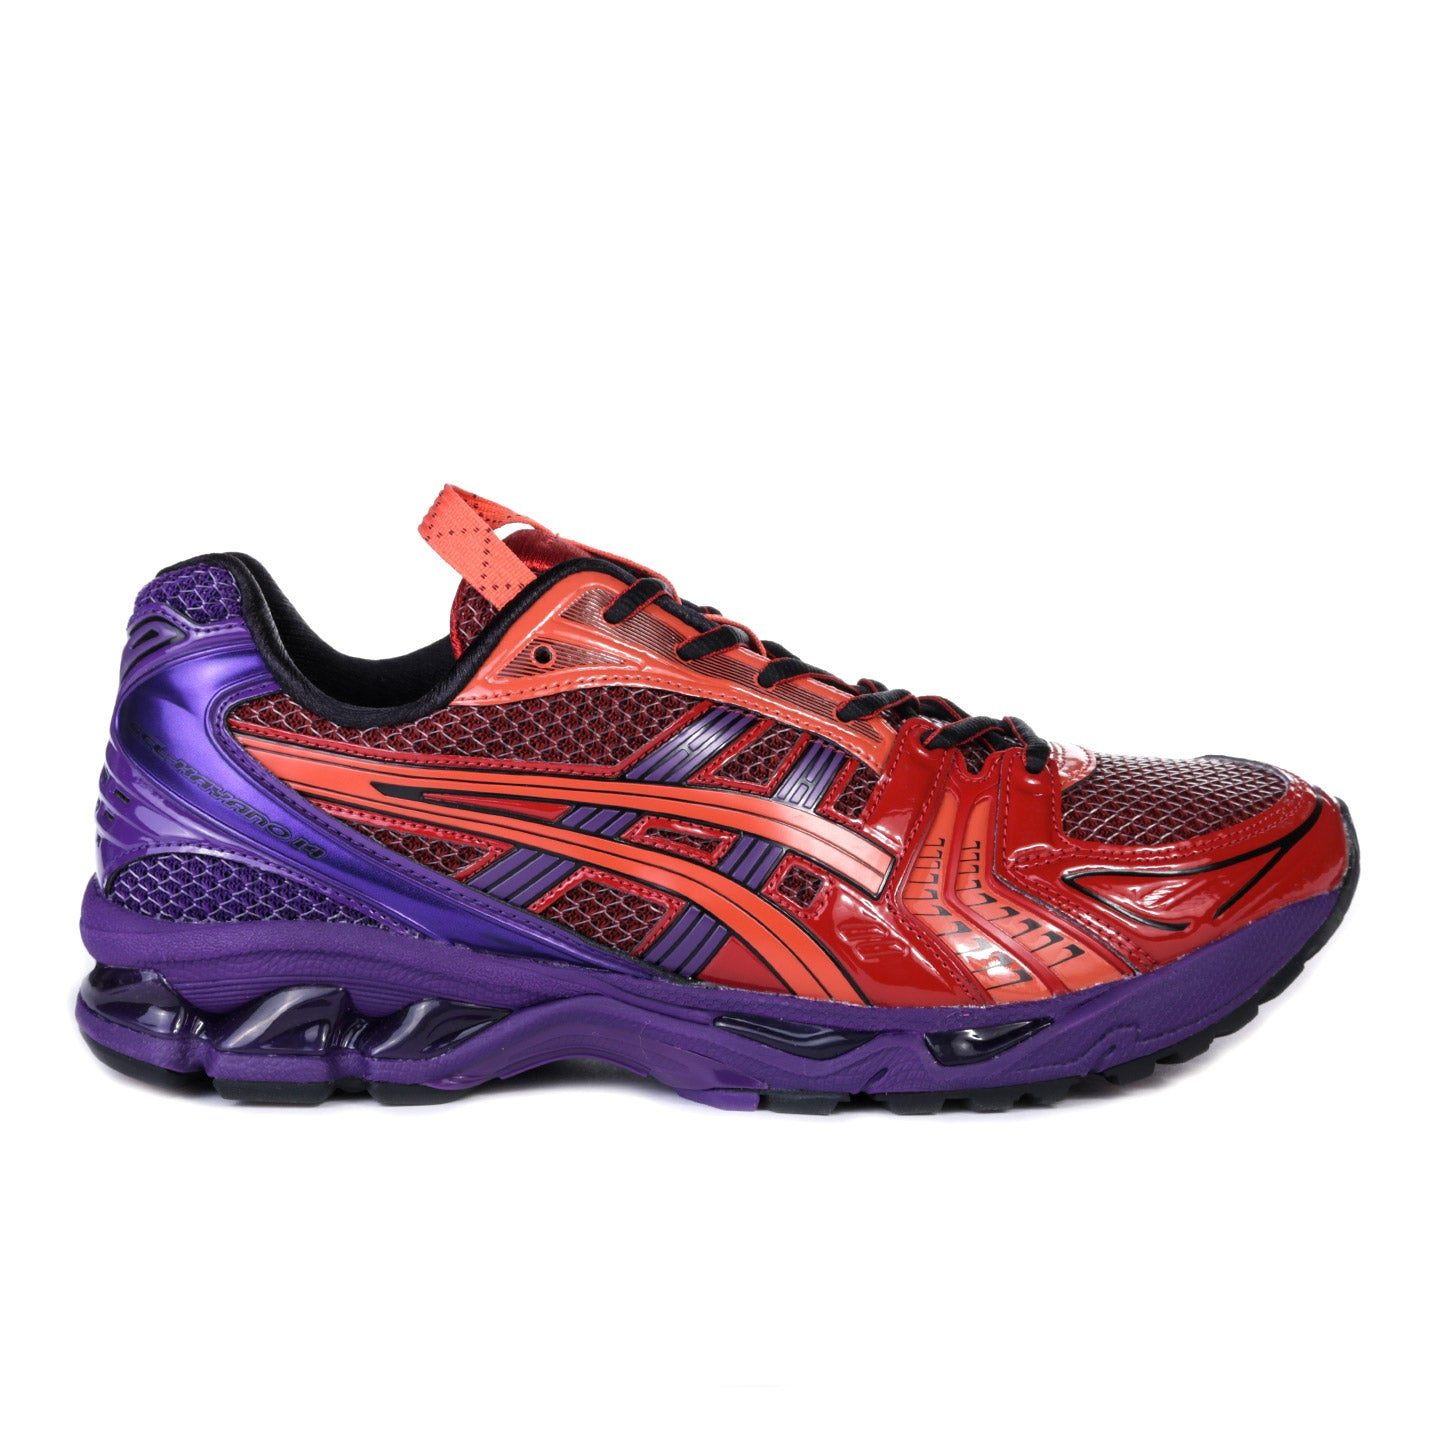 ASICS UB1-S GEL-KAYANO 14 CLASSIC RED / ASICS BLUE